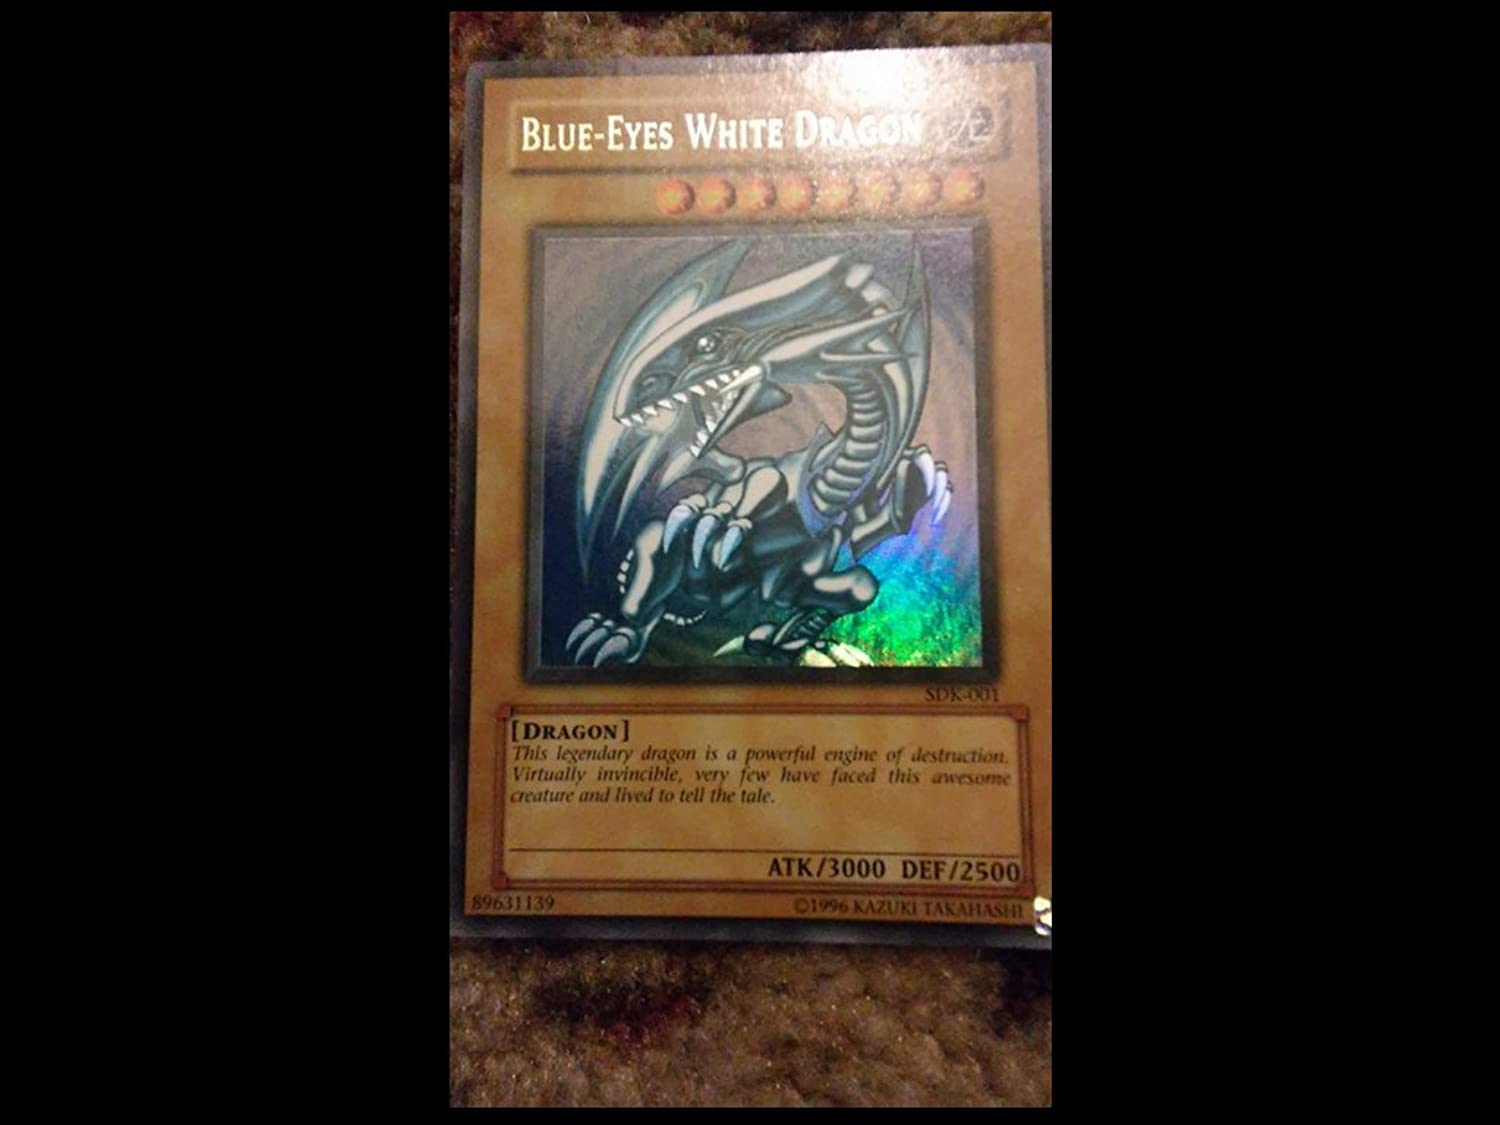 YuGiOh   blueeEyes White Dragon (SDK001)  Starter Deck Kaiba  Unlimited Edition  Ultra Rare by YuGiOh